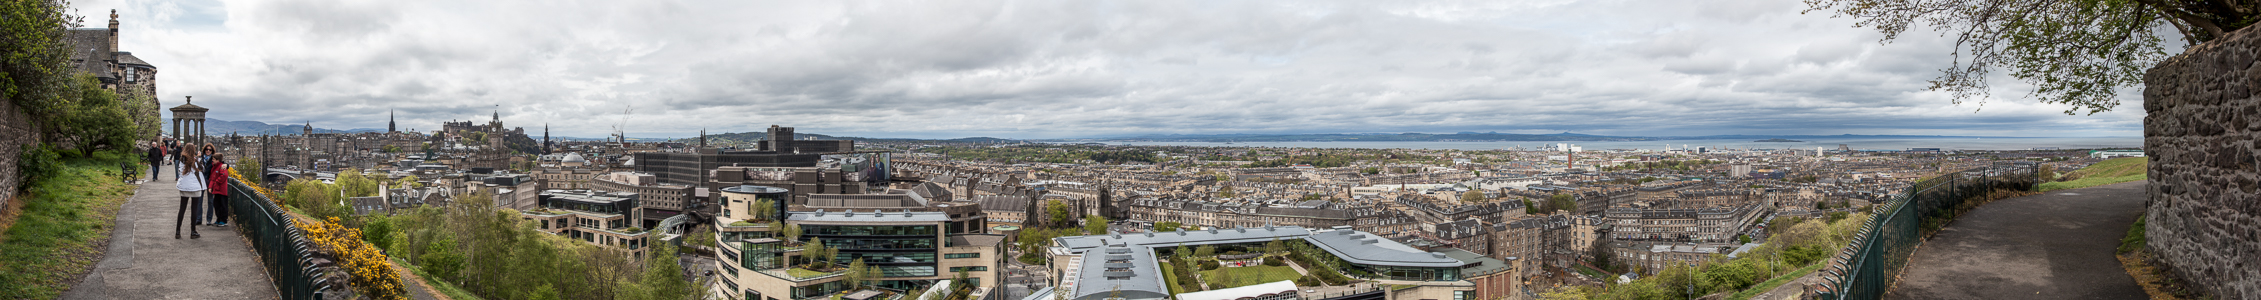 Edinburgh Blick von Calton Hill Dugald Stewart Monument Easter Road Stadium Edinburgh Castle Firth of Forth New Town Old Town Omni Centre Rockstar North Office Building Scott Monument St James Shopping Centre St Mary's Metropolitan Cathedral St Paul's and St George's Church The Balmoral